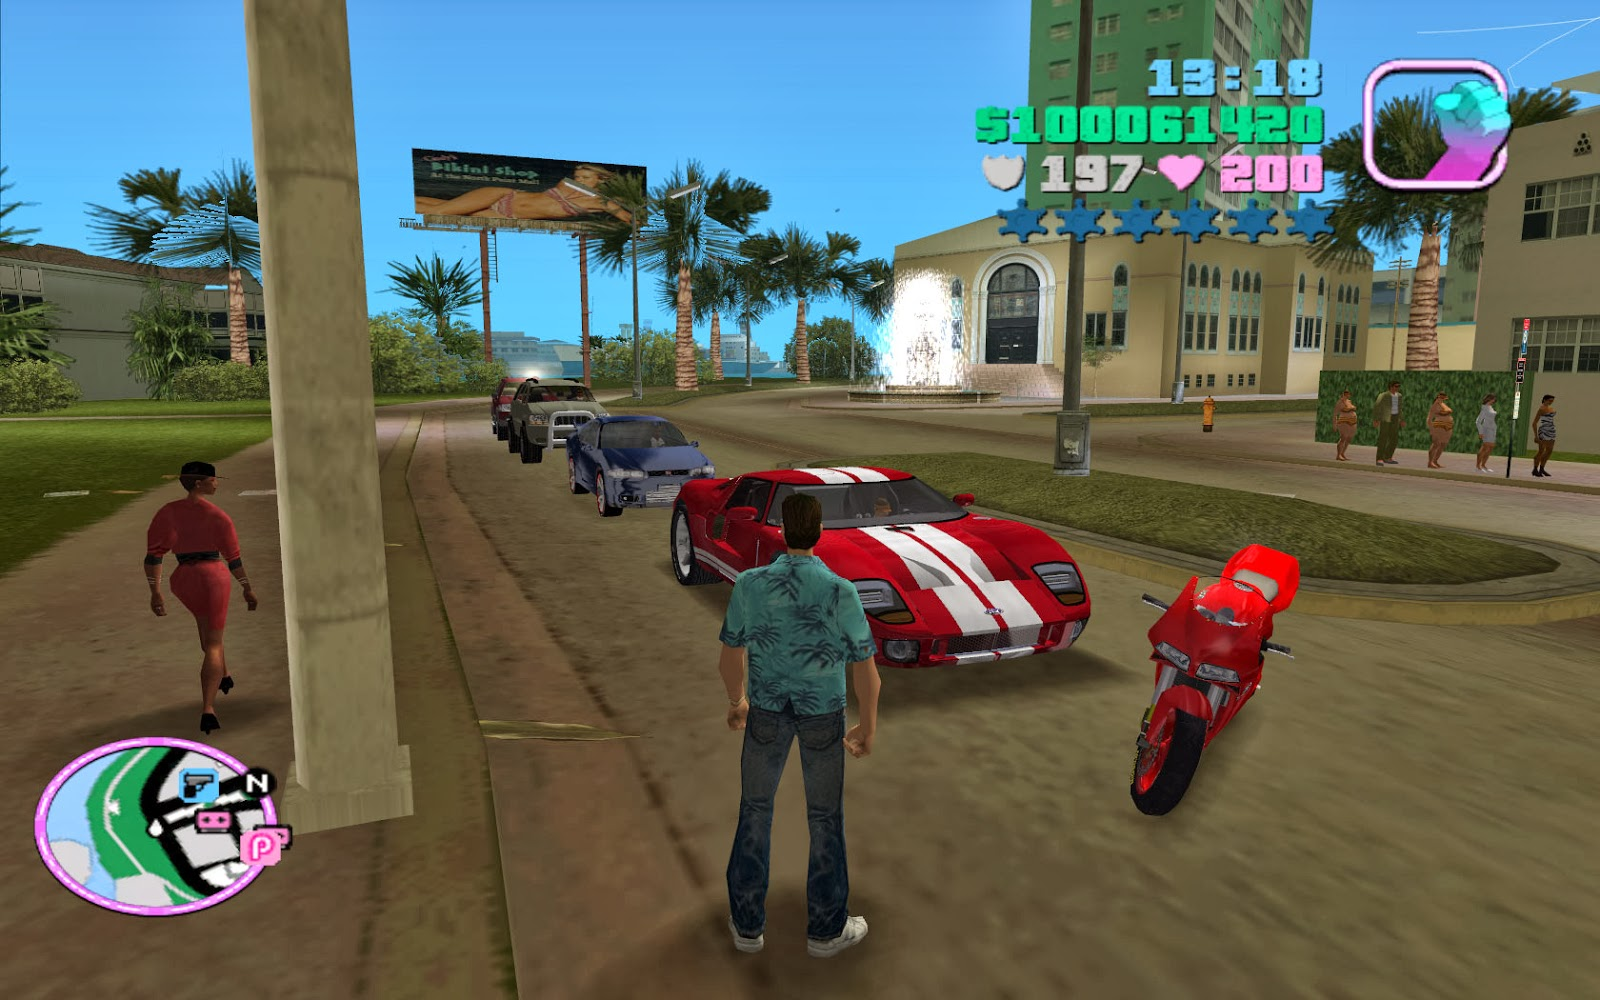 Gta Vice City Free Download Highly Compressed For Pcdon 2 ...